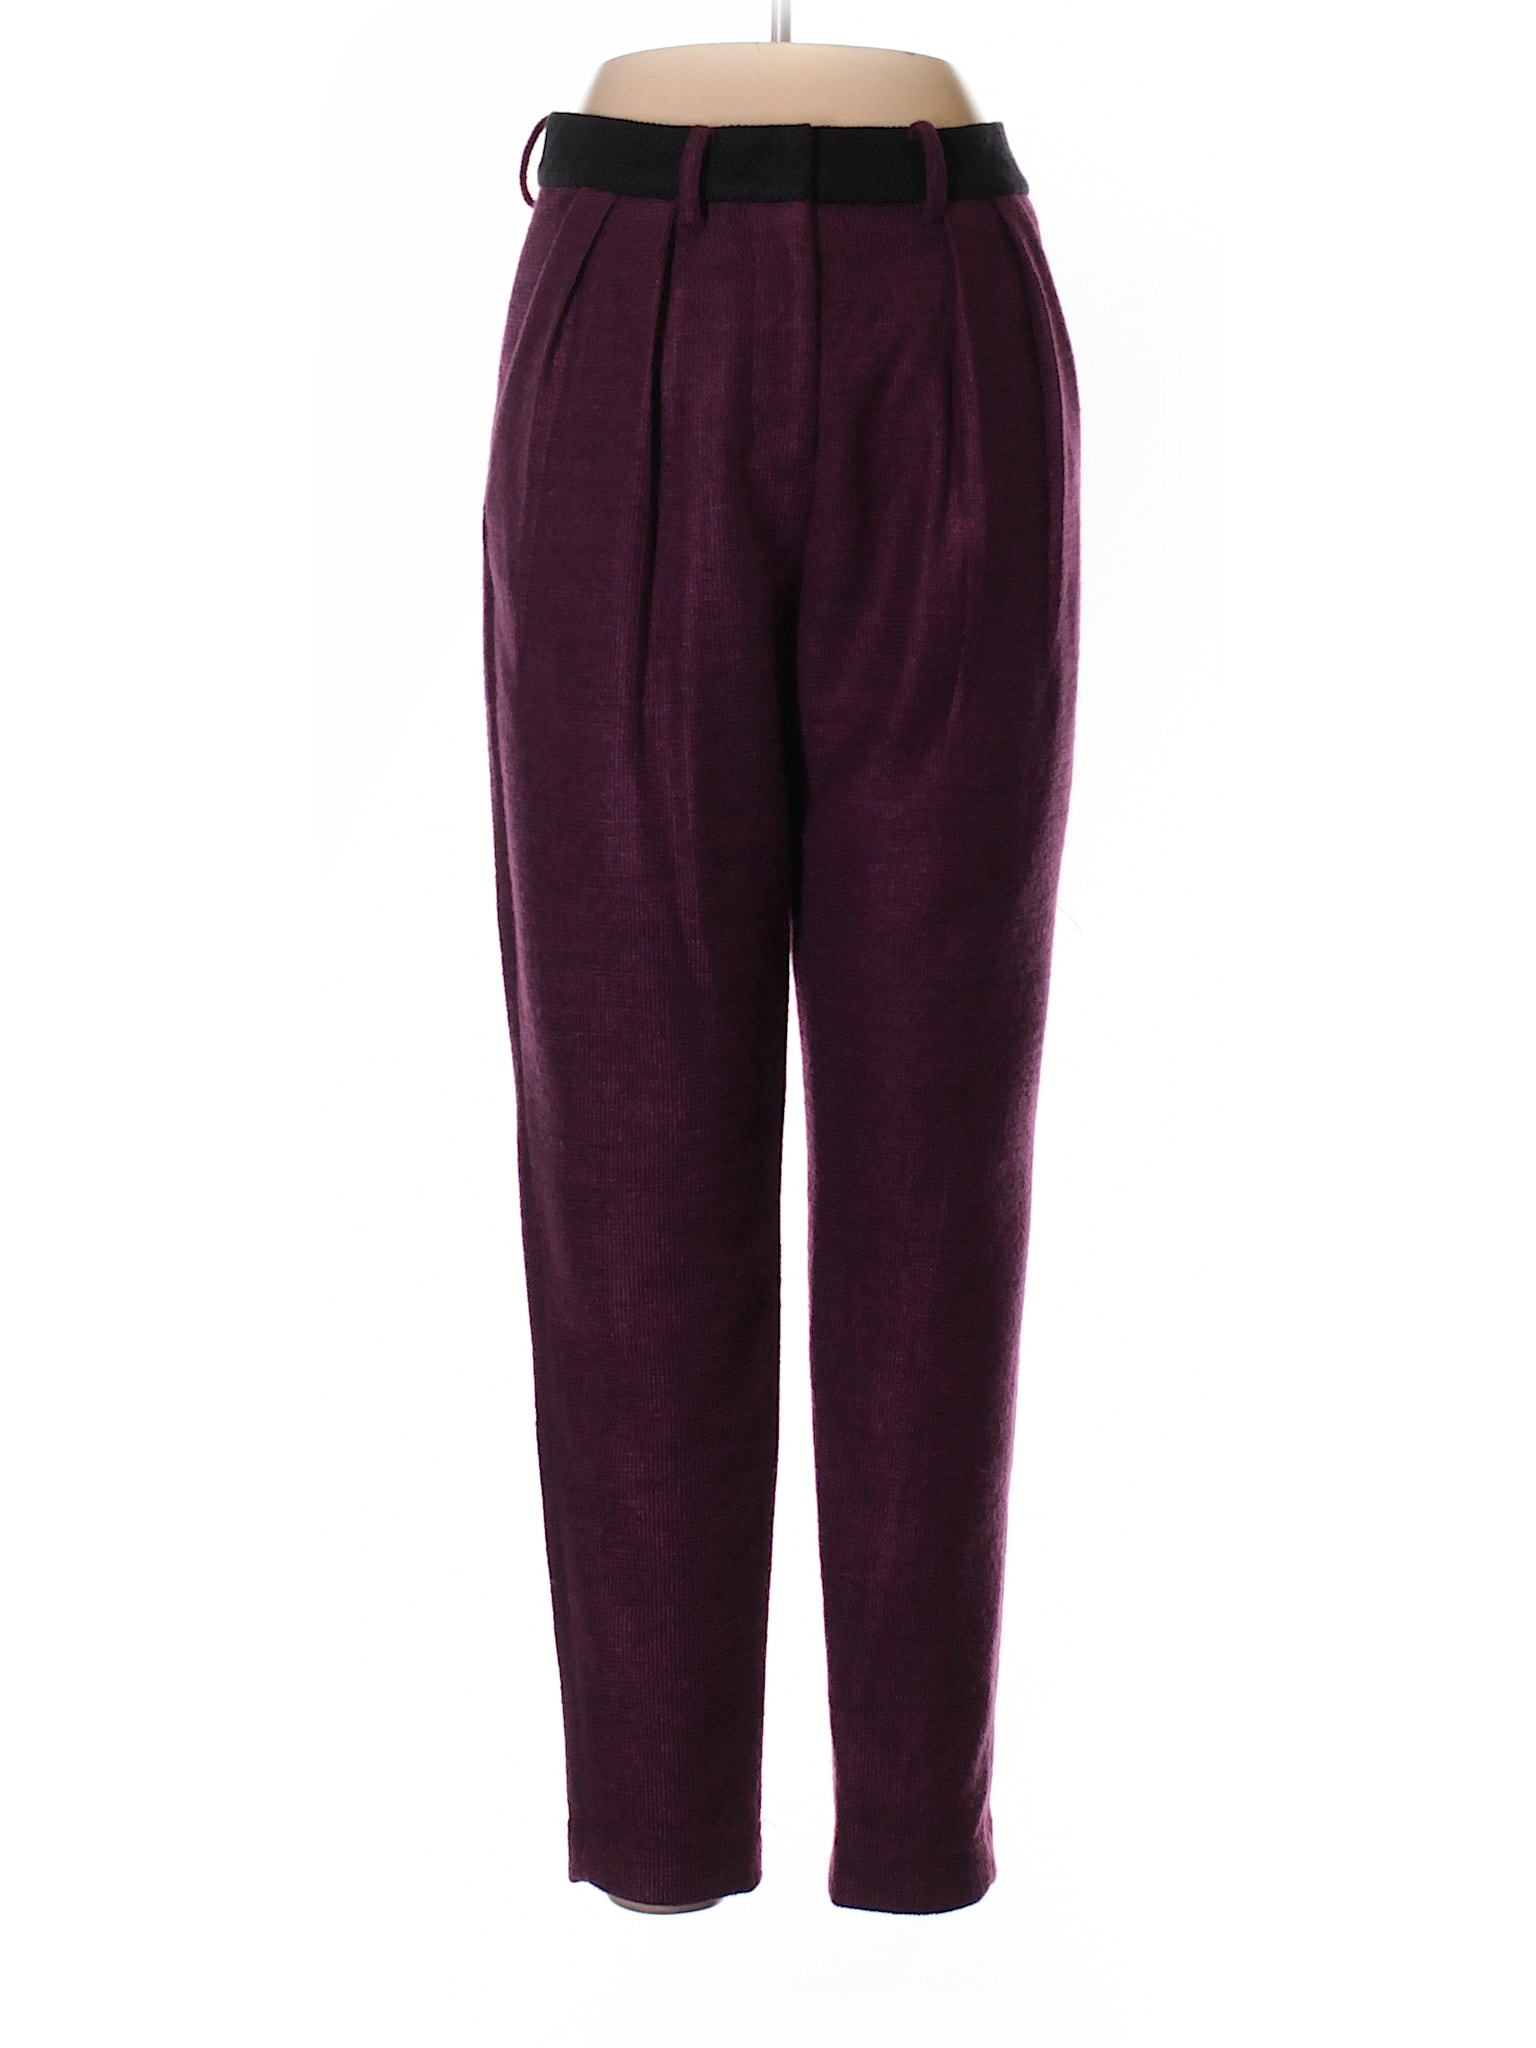 Whitney Eve Trousers -